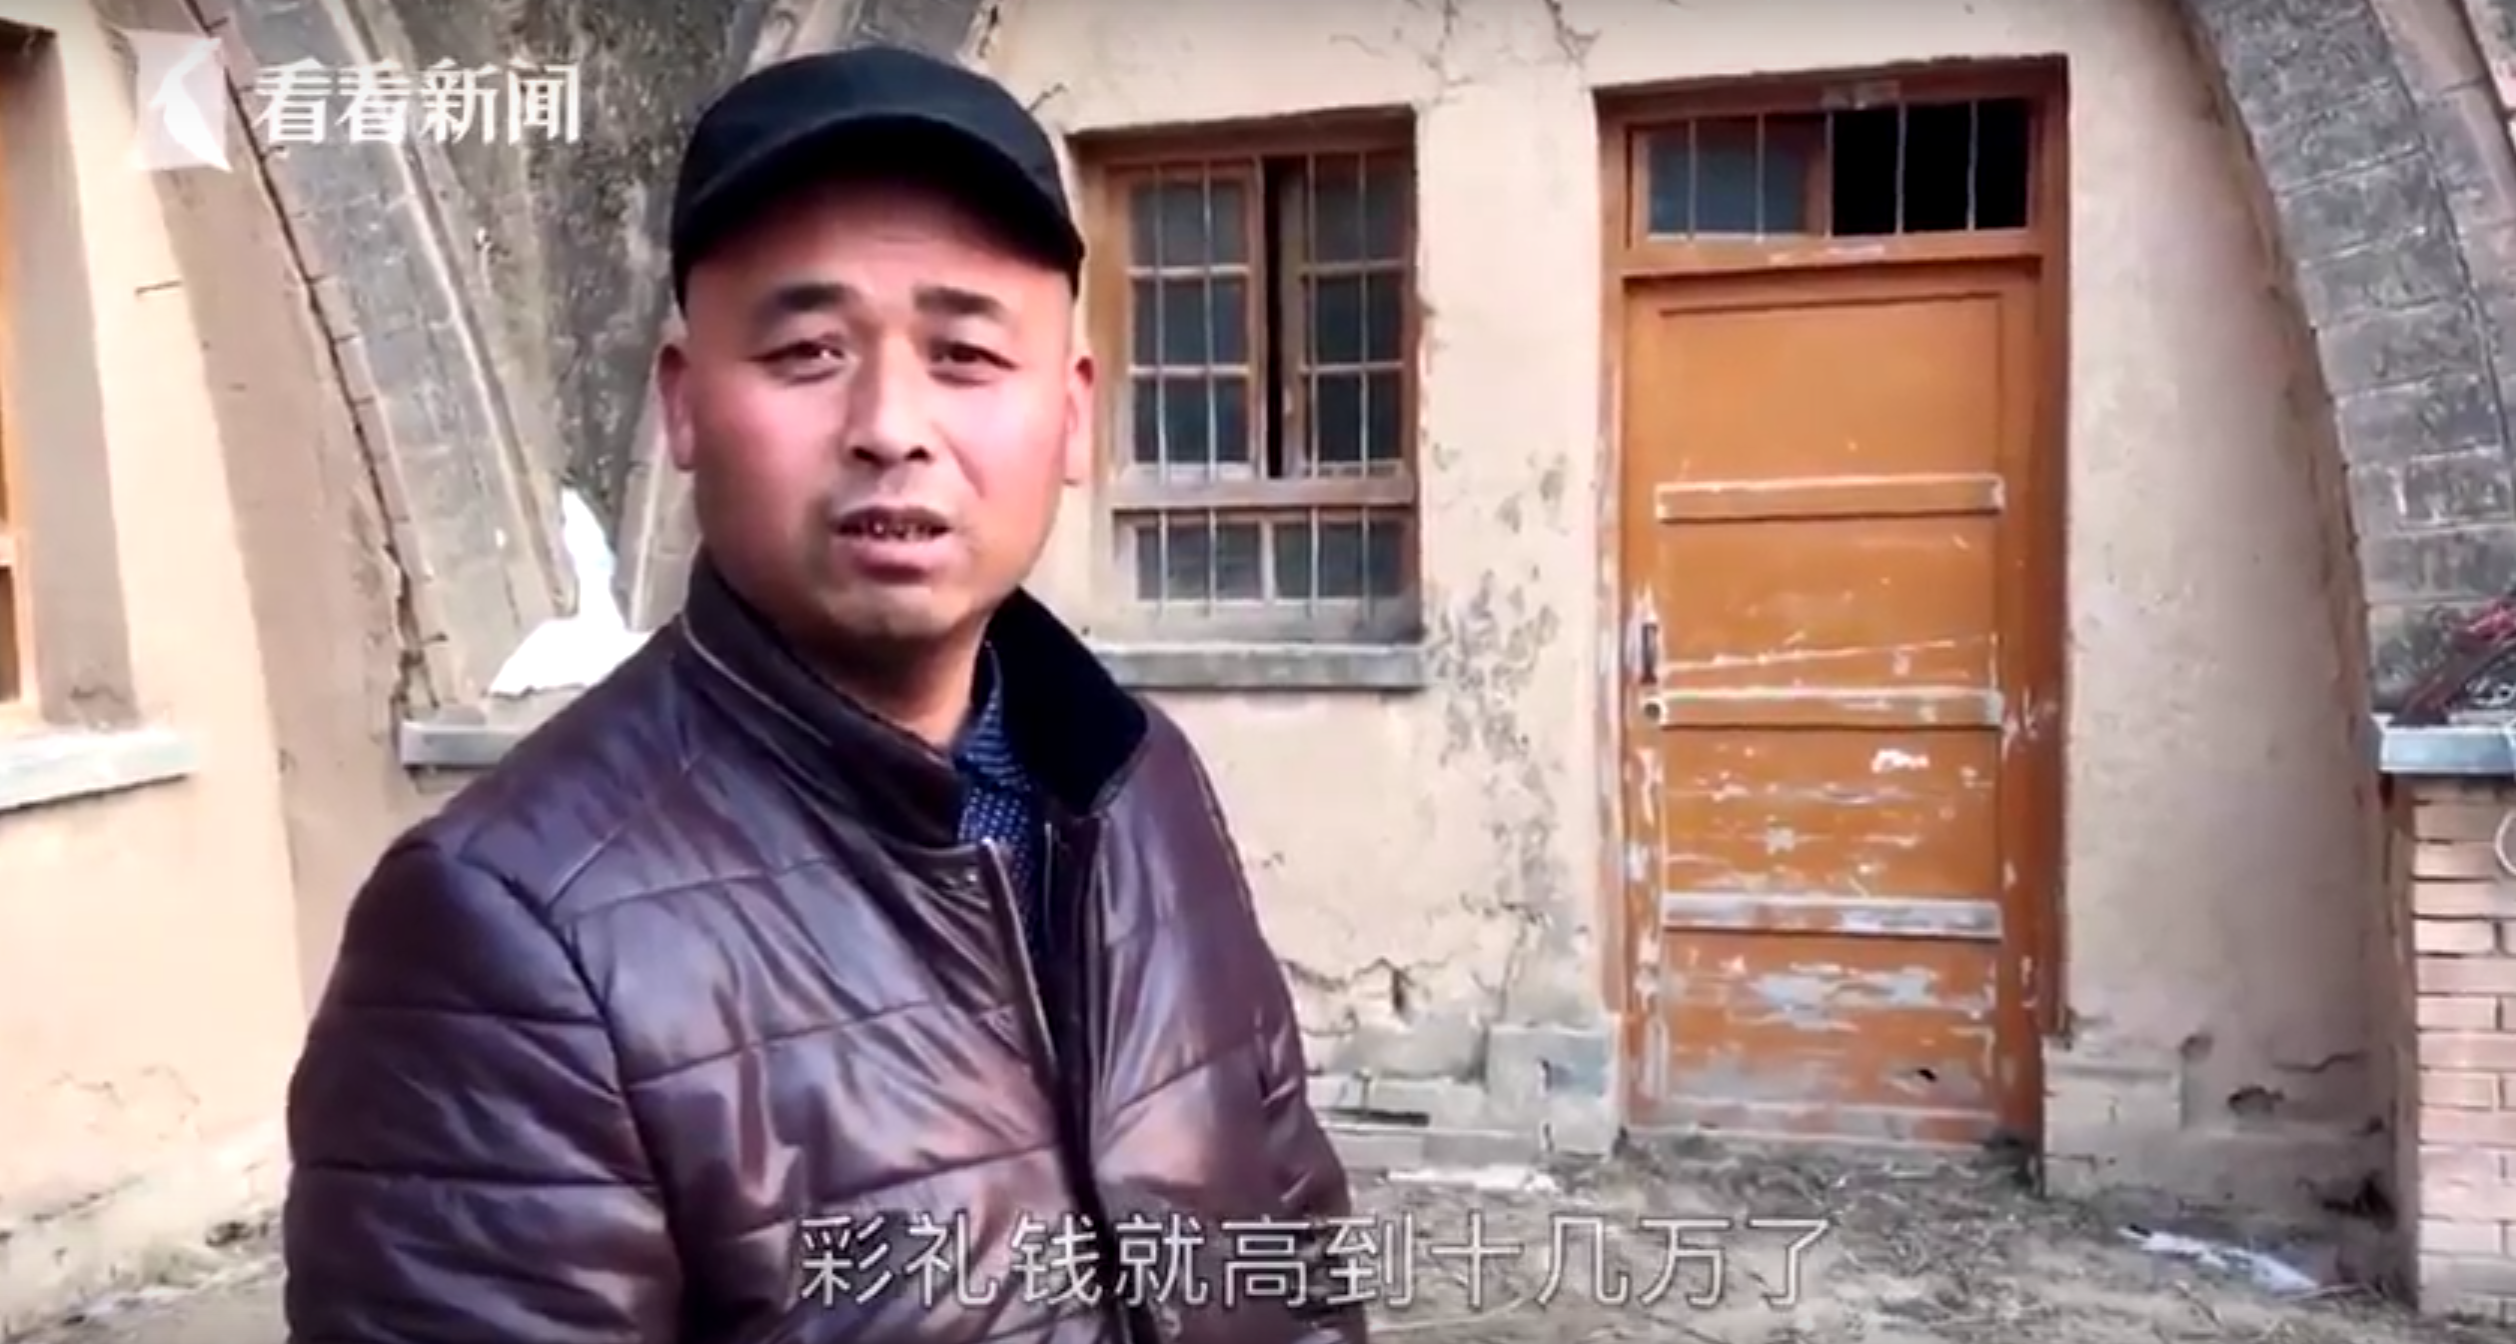 Yang Ruiqing, at his 40s, has been searching for a match for the past 18 years.